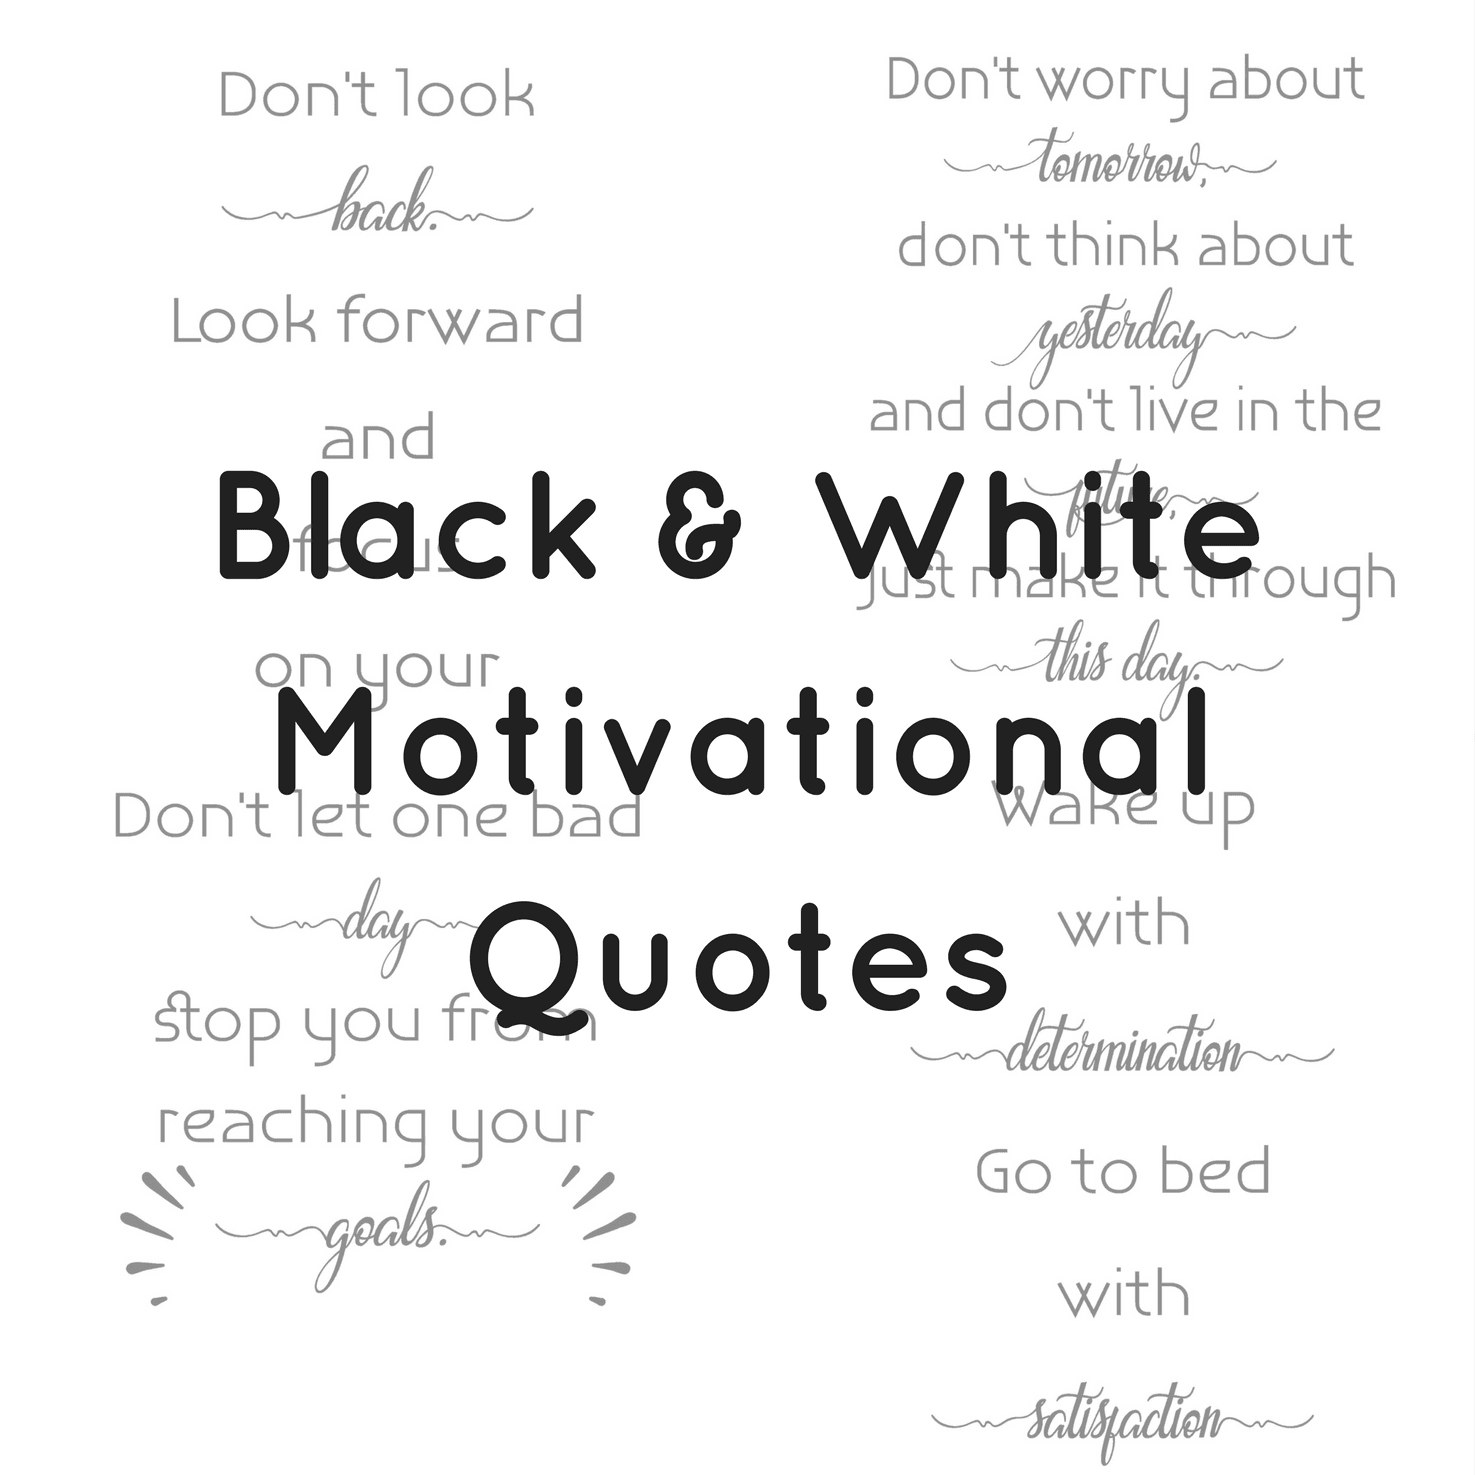 Black & White Motivational Quotes